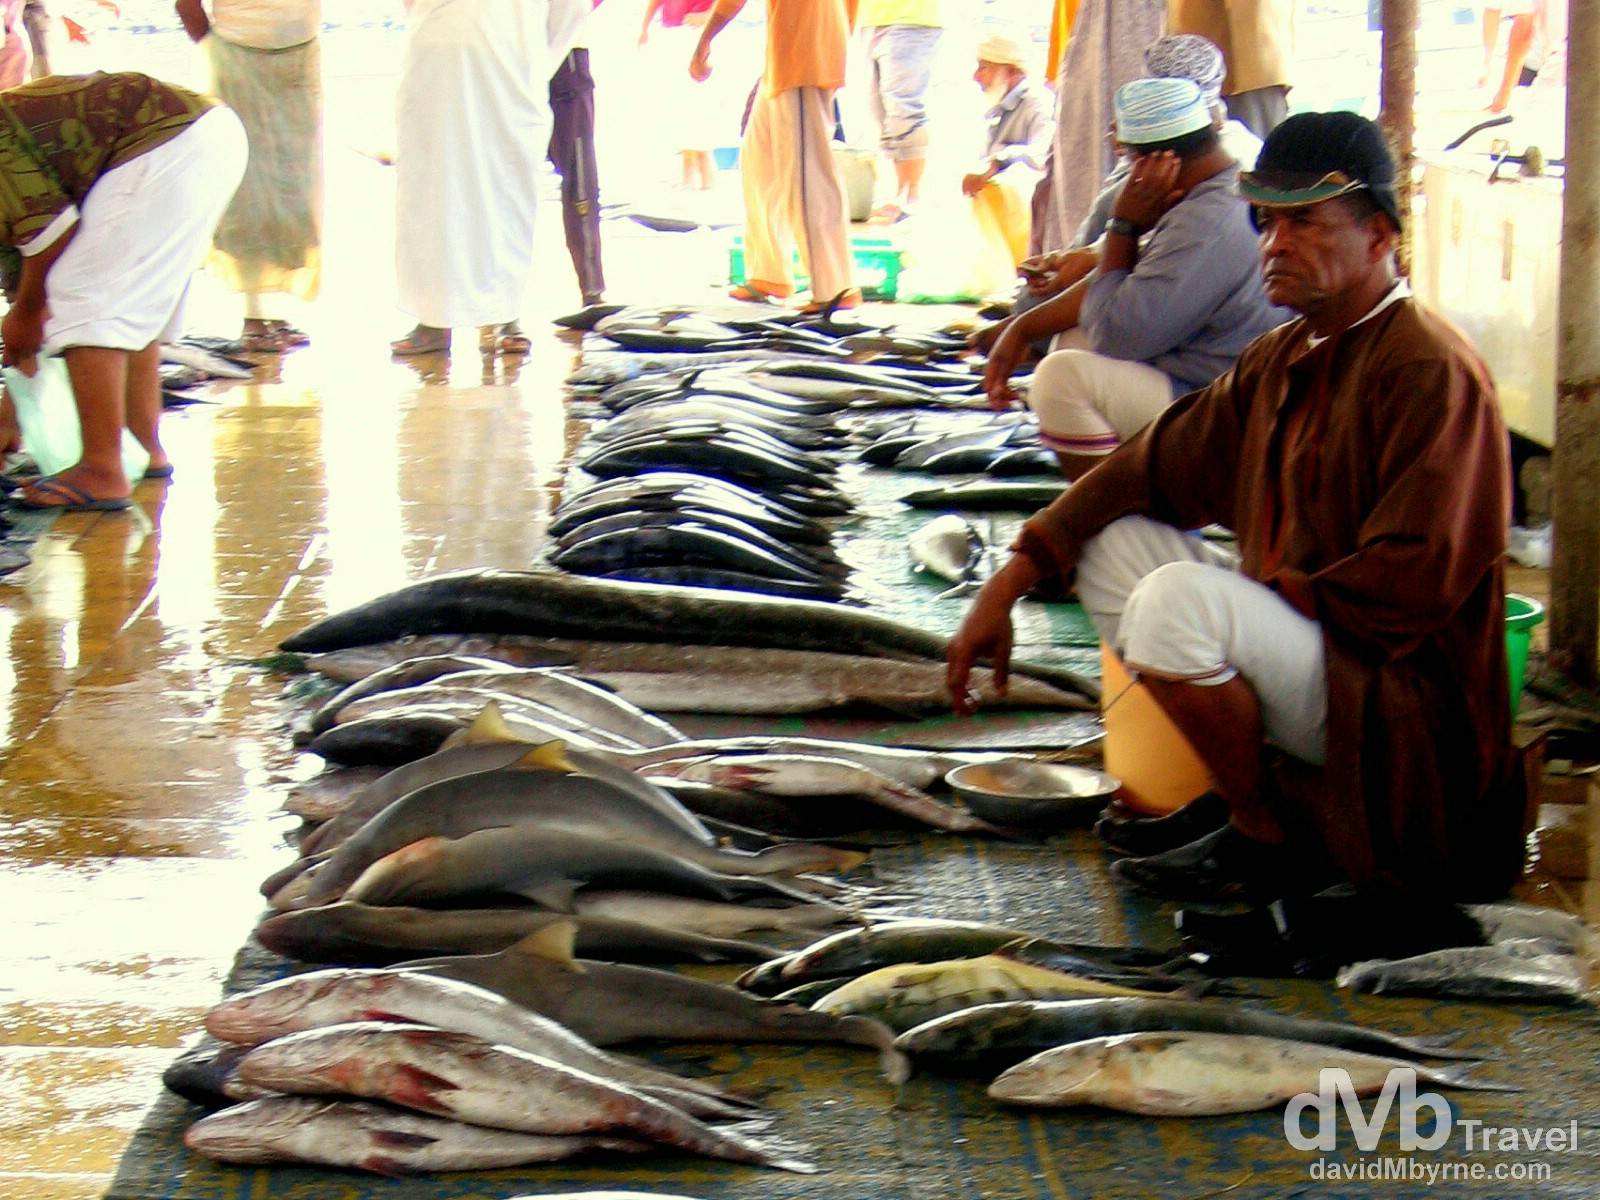 Fish market in Muscat, Oman. April 6, 2008.